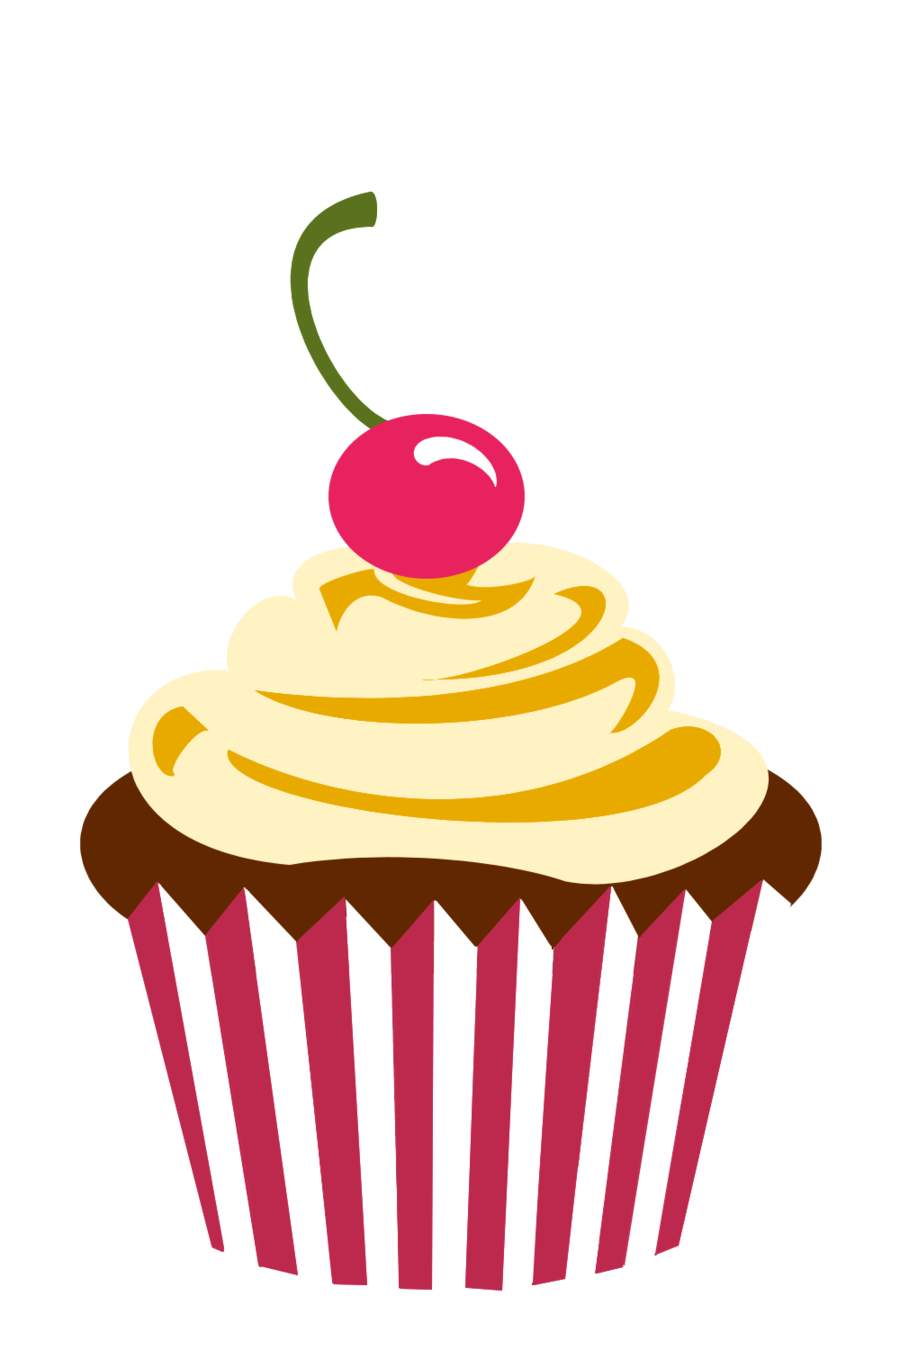 Chalk cupcake png. Logo cherry chocolate by